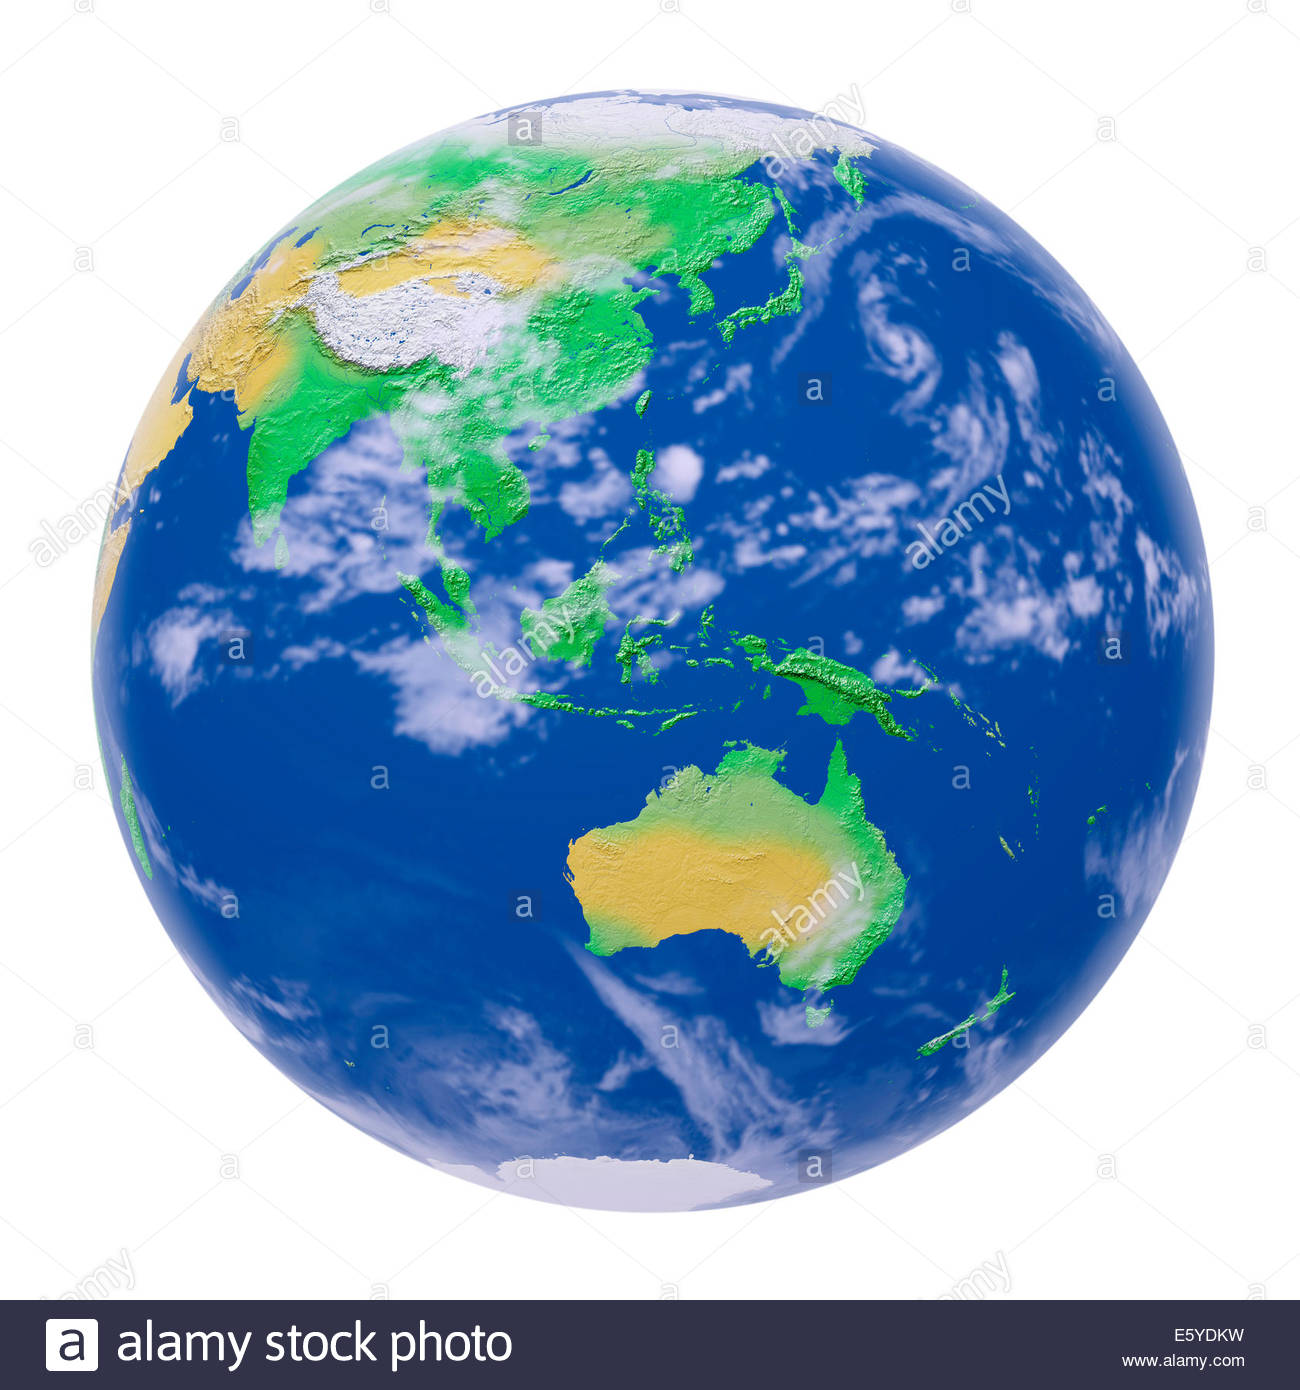 World map relief centered on stock photos world map relief simulated relief view of the globe of the earth from space centered on asia and australia gumiabroncs Choice Image